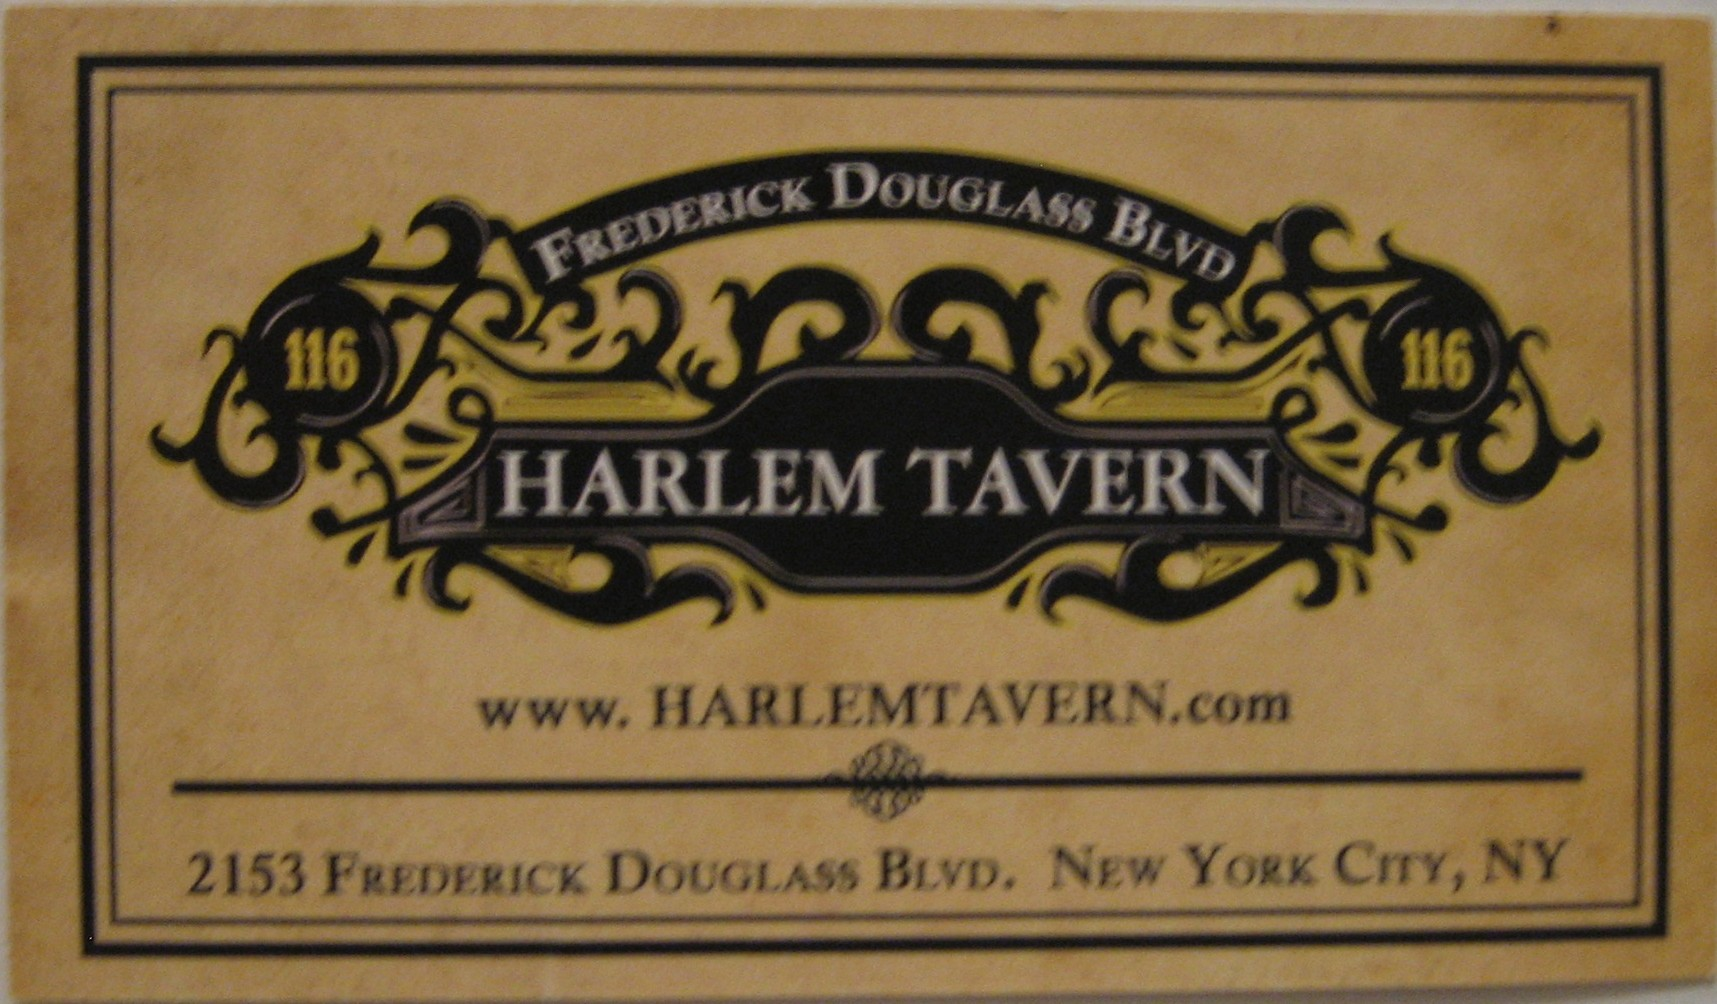 Lunch at Harlem Tavern